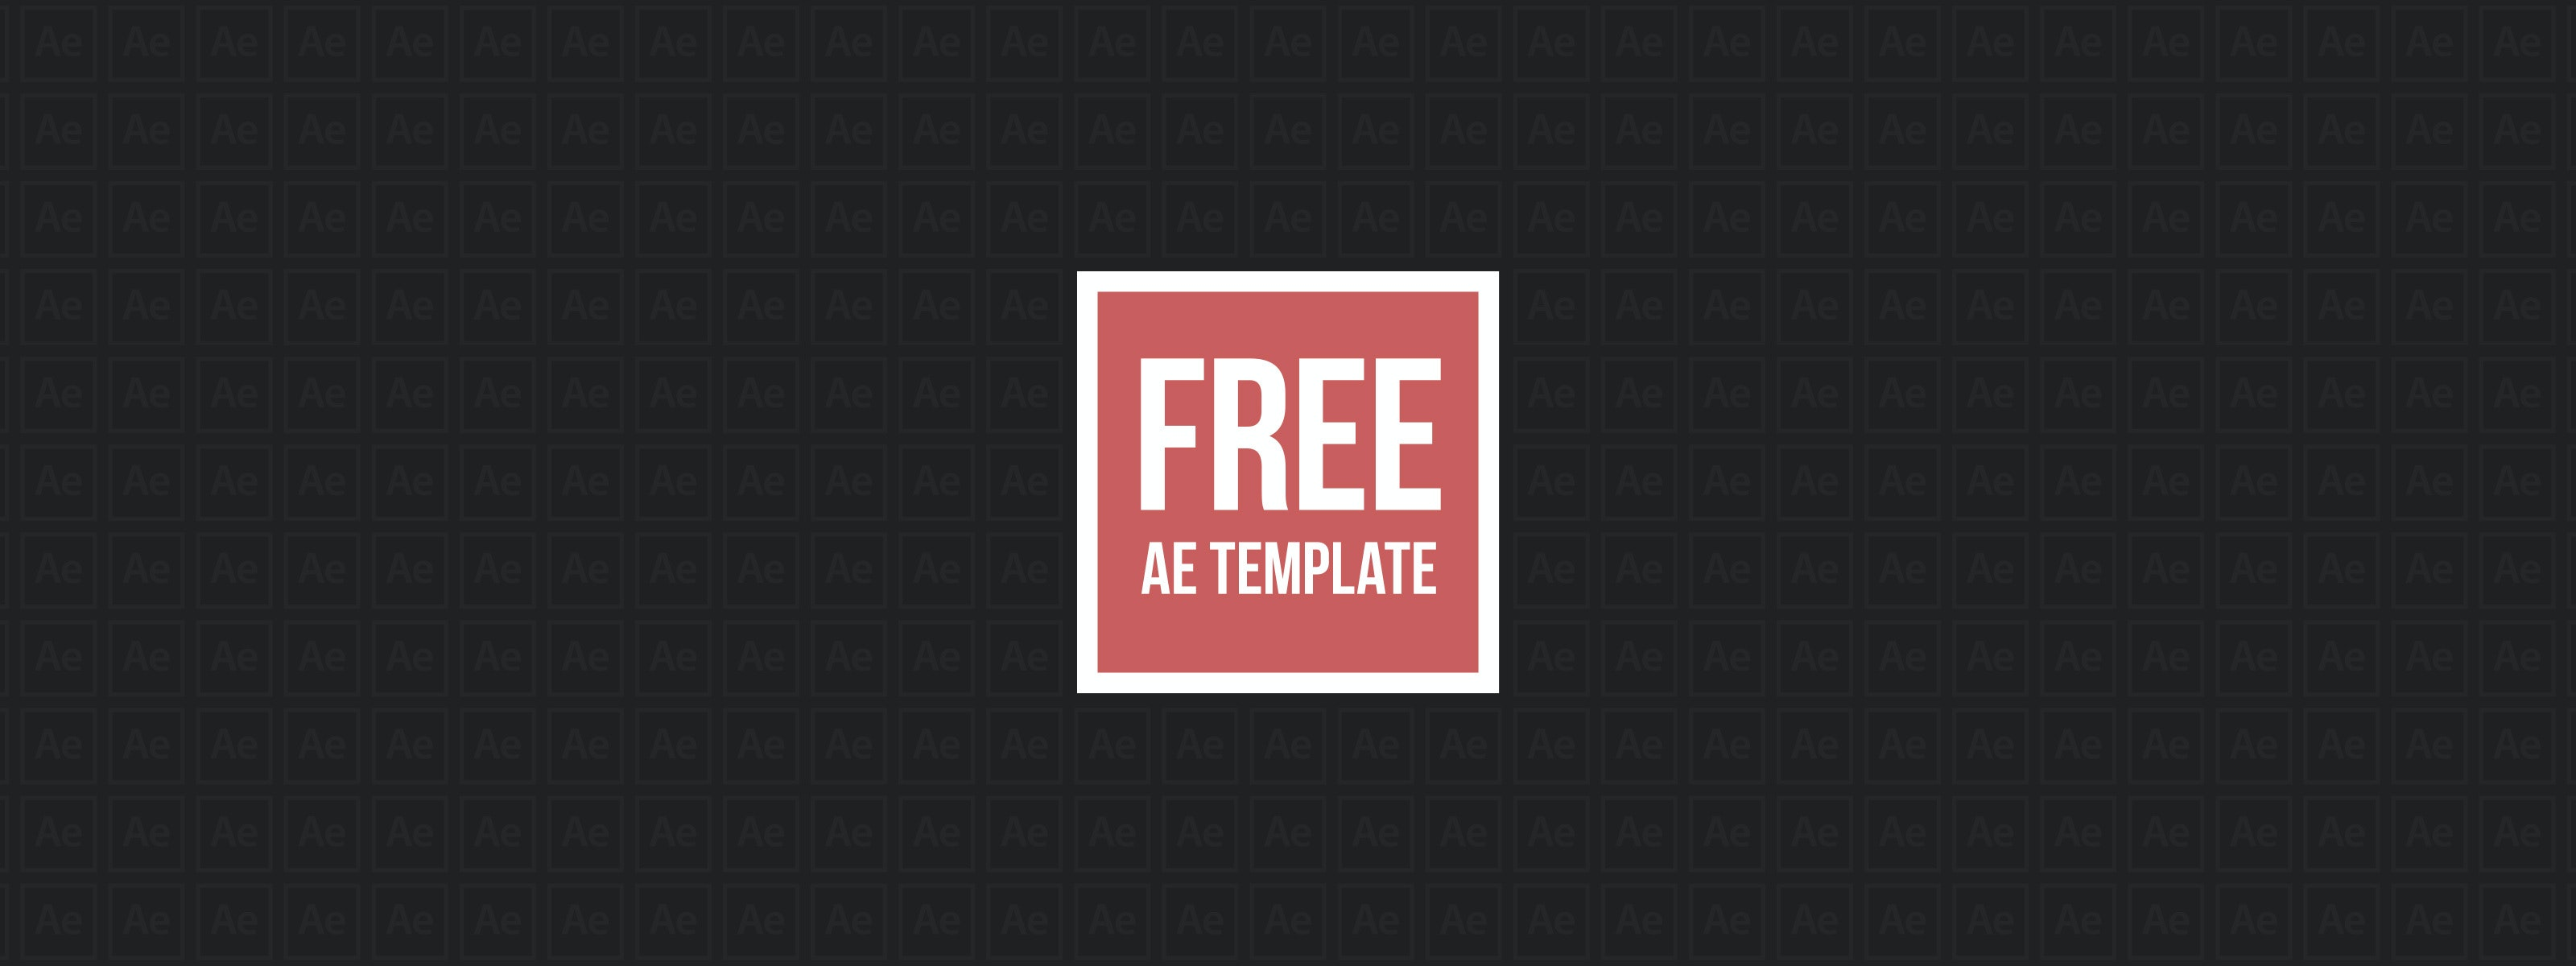 free cubic after effects template | motion array, Powerpoint templates